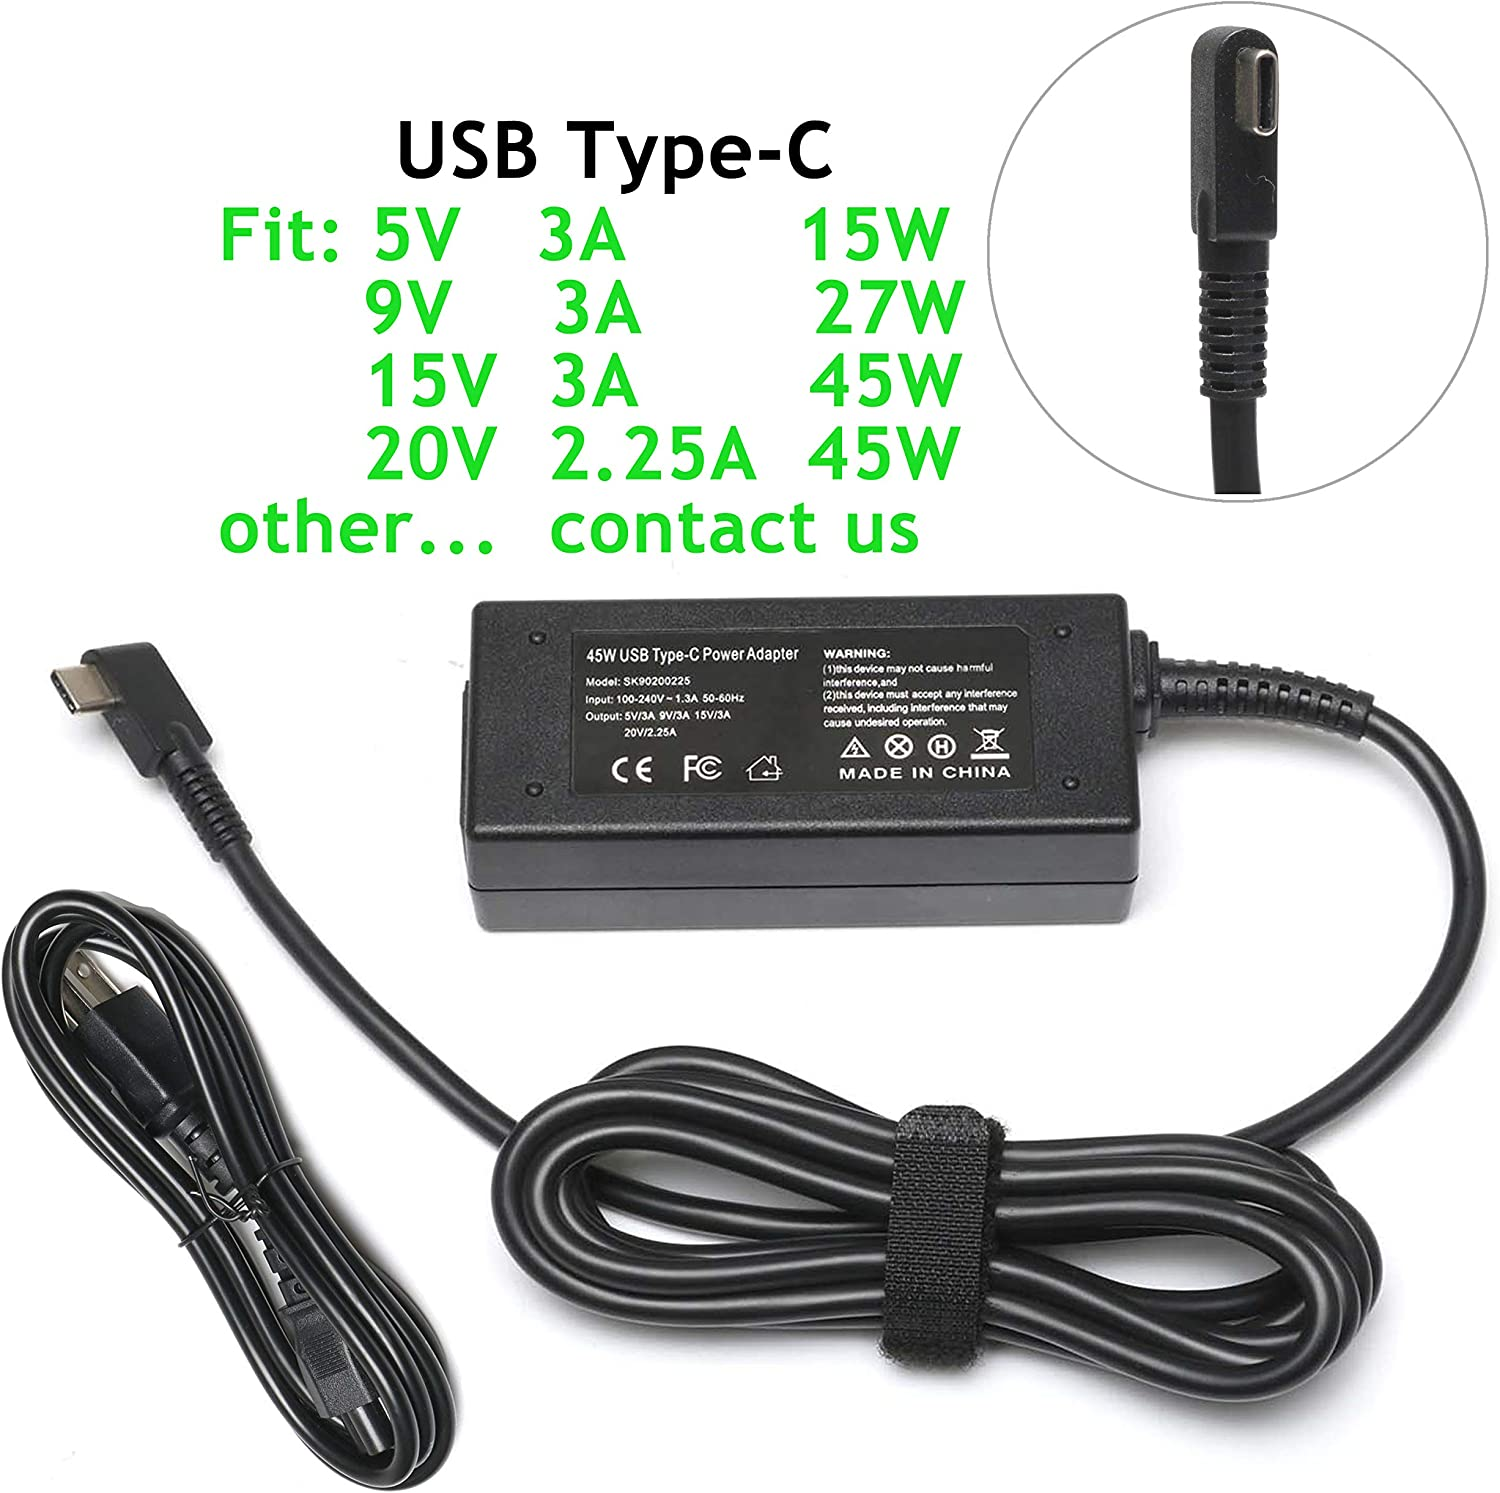 45W USB Type C AC Charger for HP Spectre x360 13 TPN-CA01;Lenovo Yoga 720 910 720-13IKB 910-13IKB;Miix 720-12ikb;IdeaPad 720s;Thinkpad X1 Tablet Yoga 5 Pro GX20M33579 Laptop Power Adapter Supply Cord